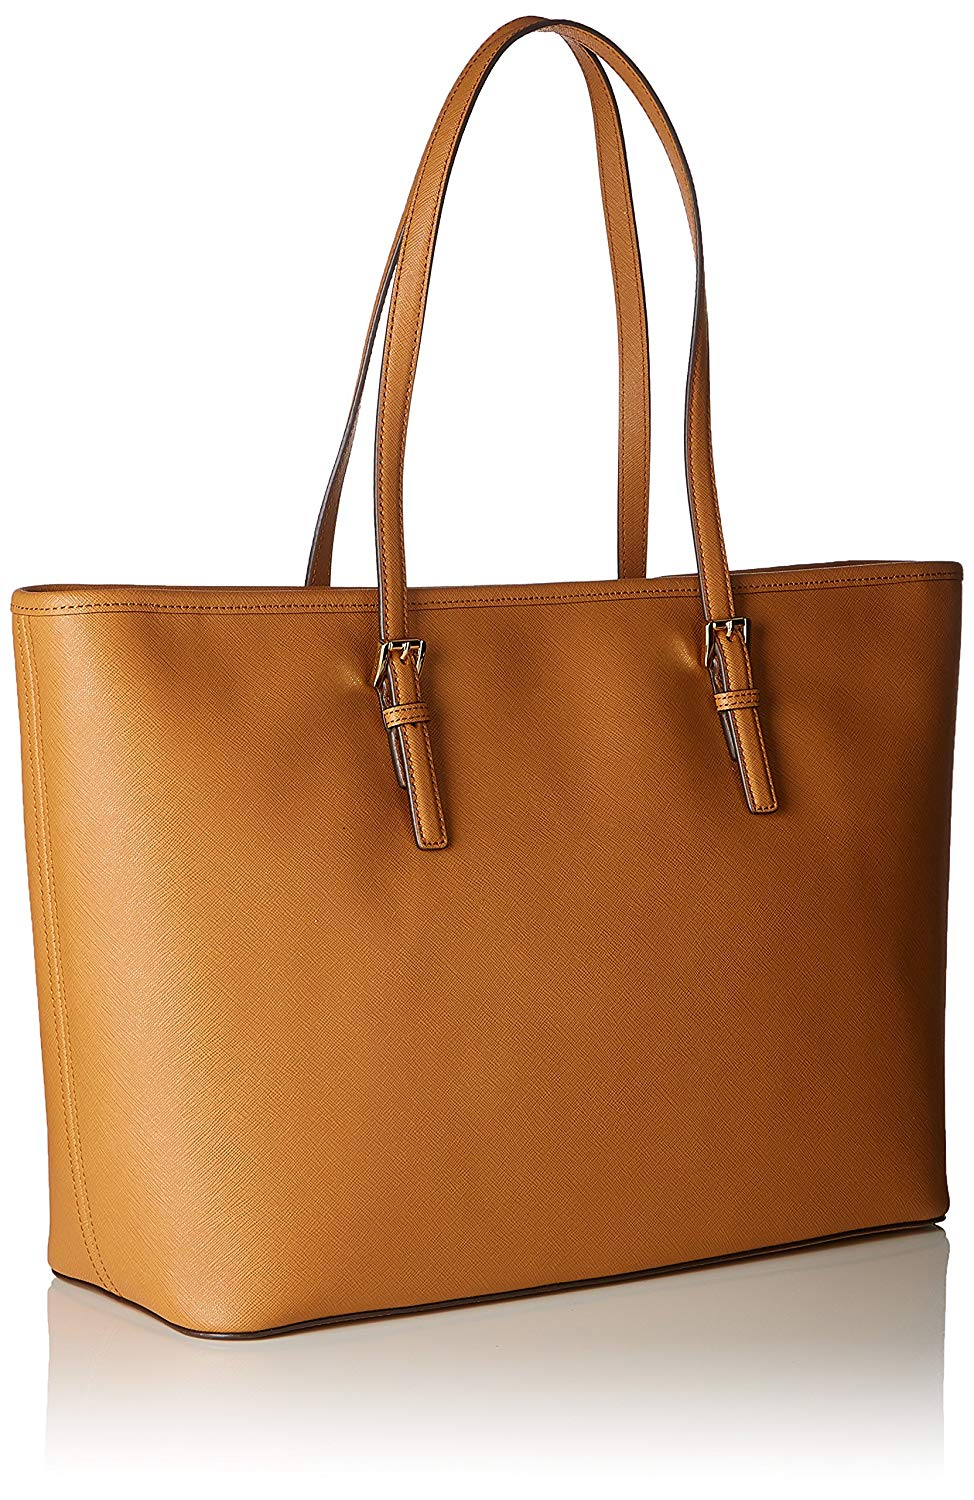 2b306acc6146 ... Michael Kors Womens Jet Set Travel Tote, Brown (Acorn) - miomeraki-app  ...